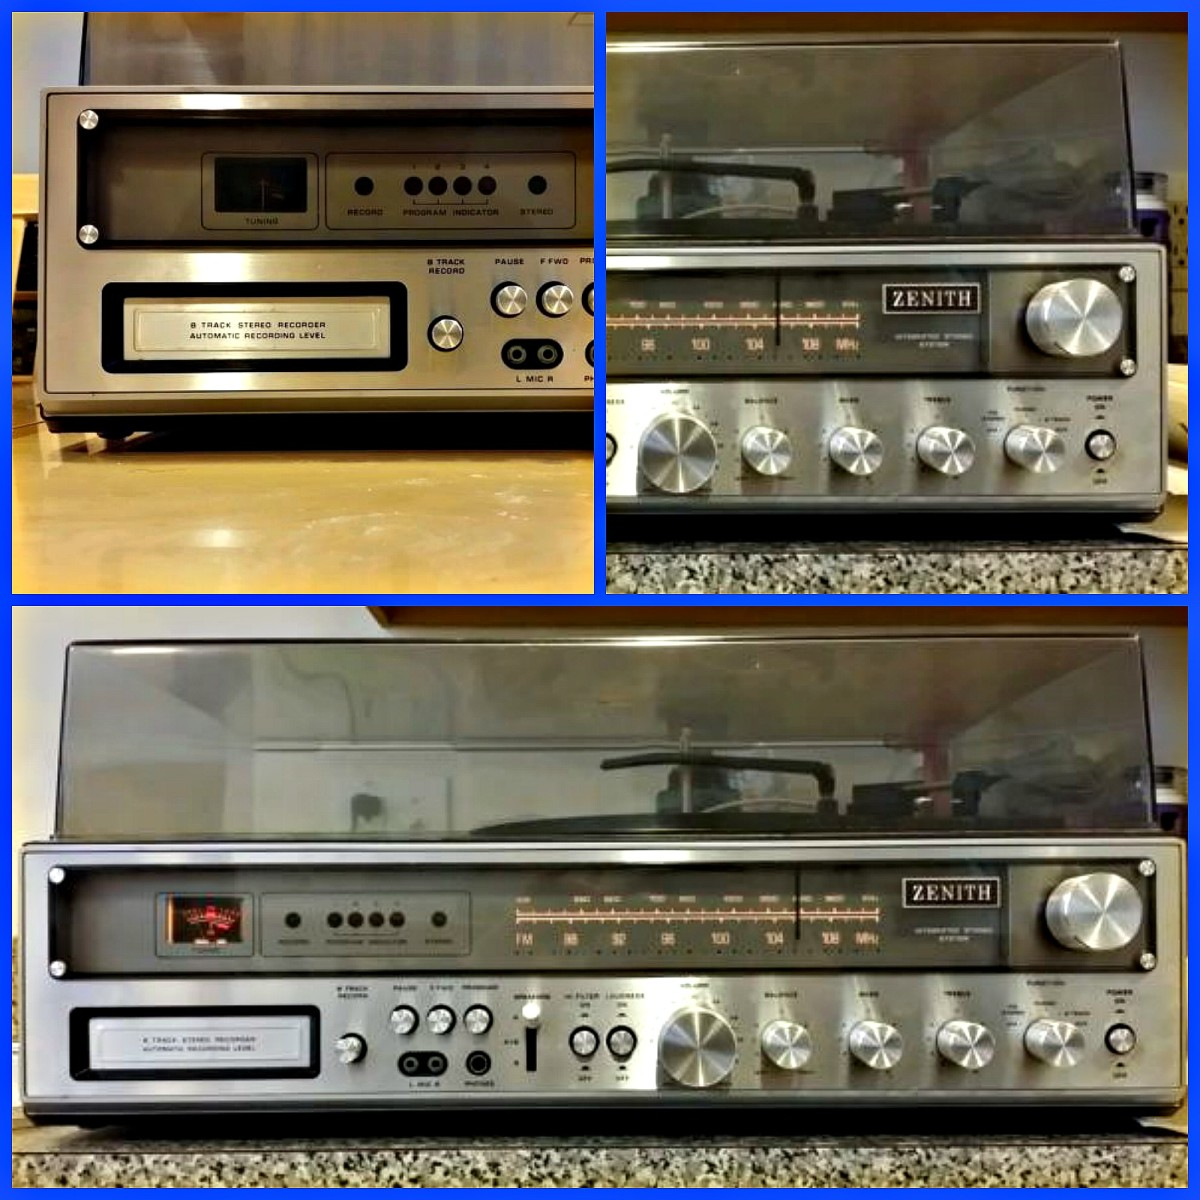 It has a state of the art  FM and AM broadcasting stereo, with a made in Japan by Zenith eight track player, a British made for Zenith record changer, and the solid state stereo unit in brushed silver looks shape and modern in this unit.